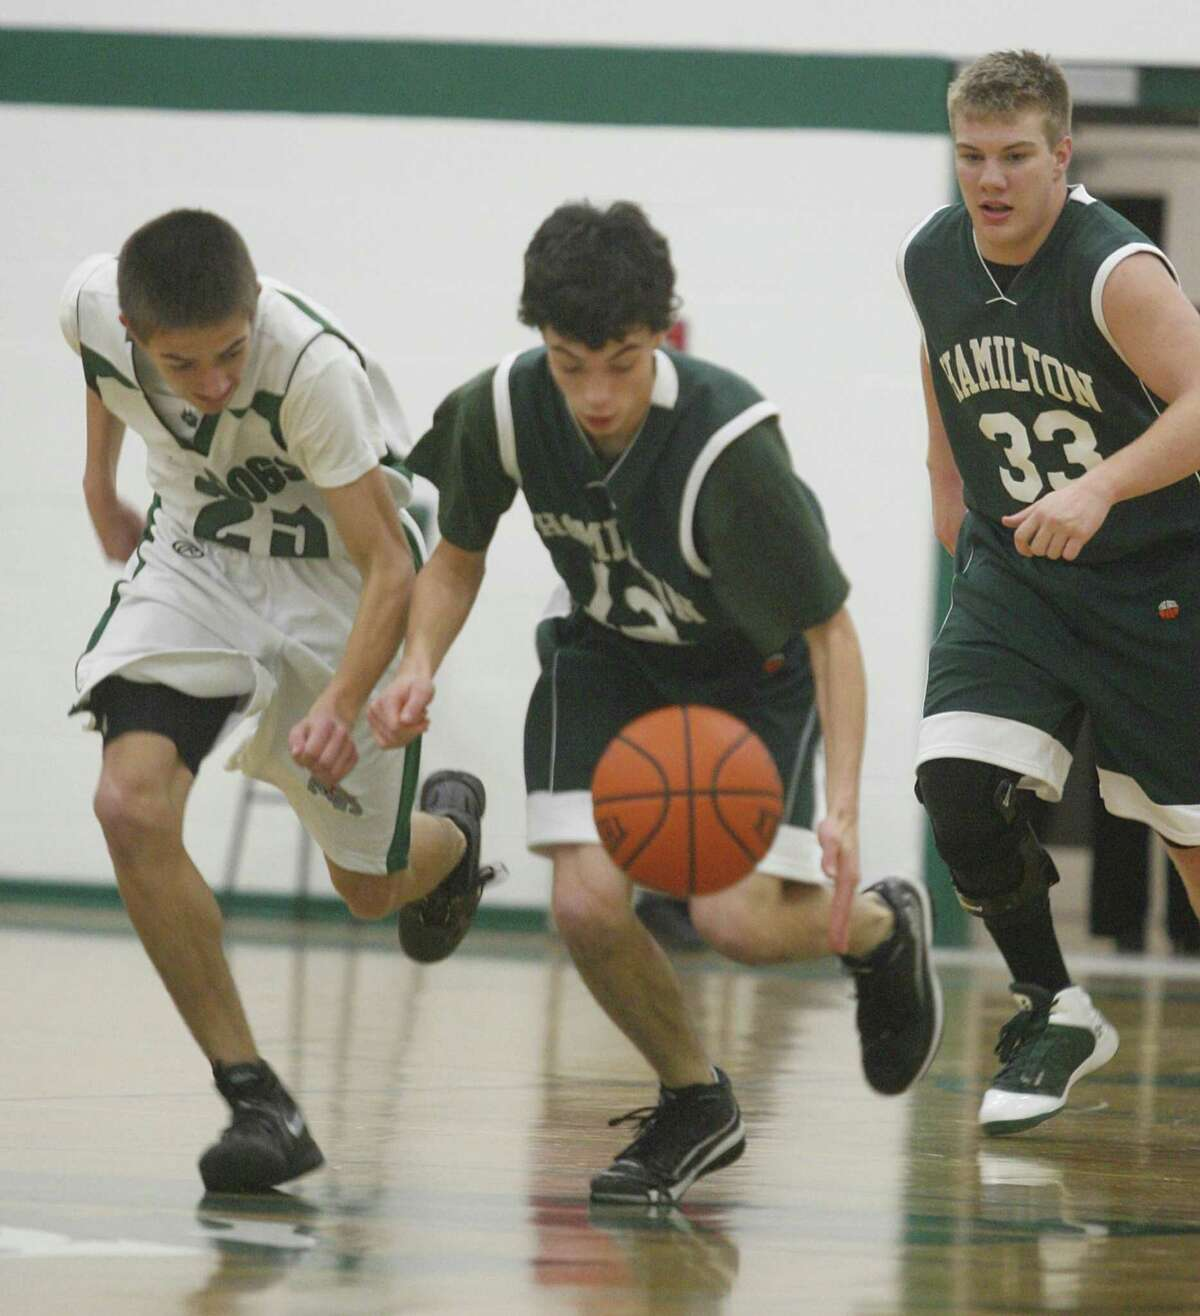 Dispatch Staff Photo by JOHN HAEGER twitter.com/oneidaphoto Hamilton's Zach Dow (33) watches as teammate Allen Schult (12) and Westmoreland's Tyler Witter (25) battle for the ball in their game in Westmoreland on Thursday, Dec. 22 , 2011.